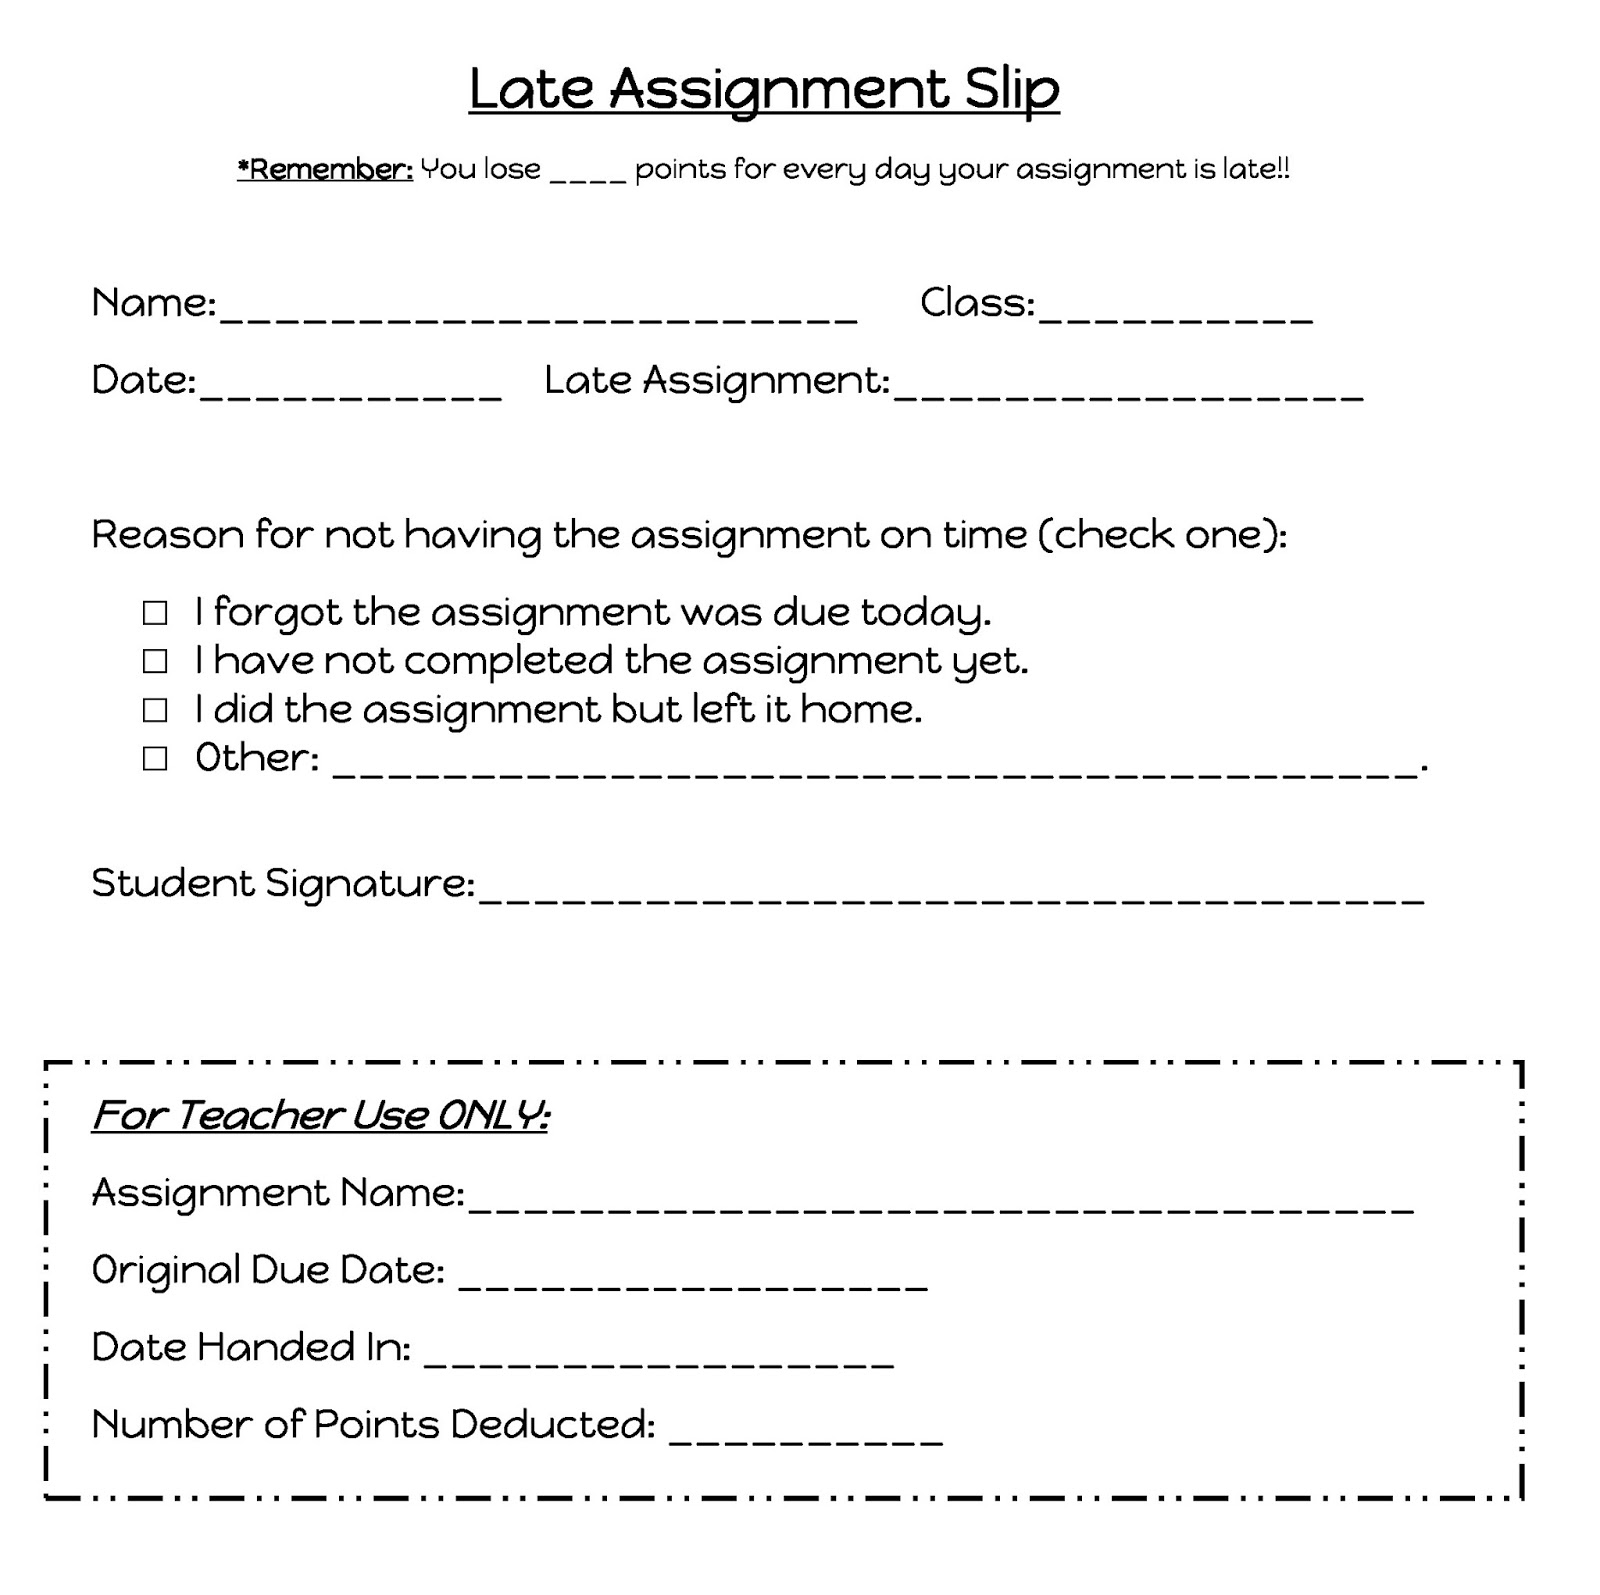 Missing assignment form Homework Academic Writing Service ...